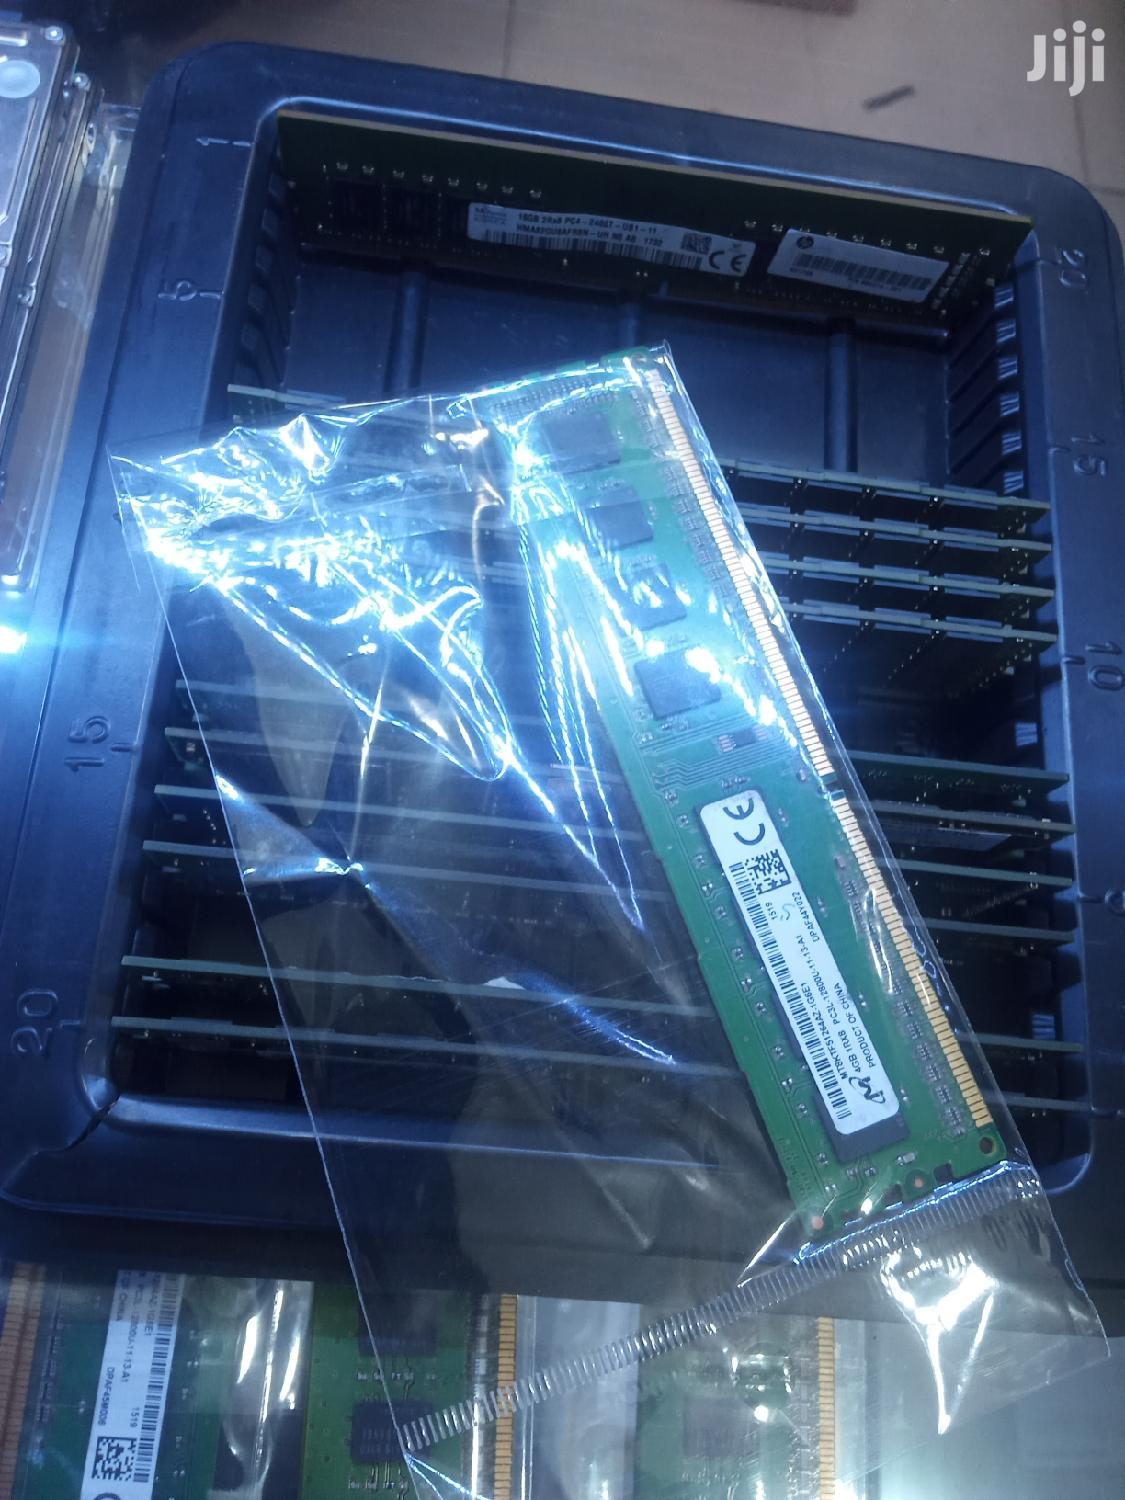 Archive: DDR 3 Ram Chips